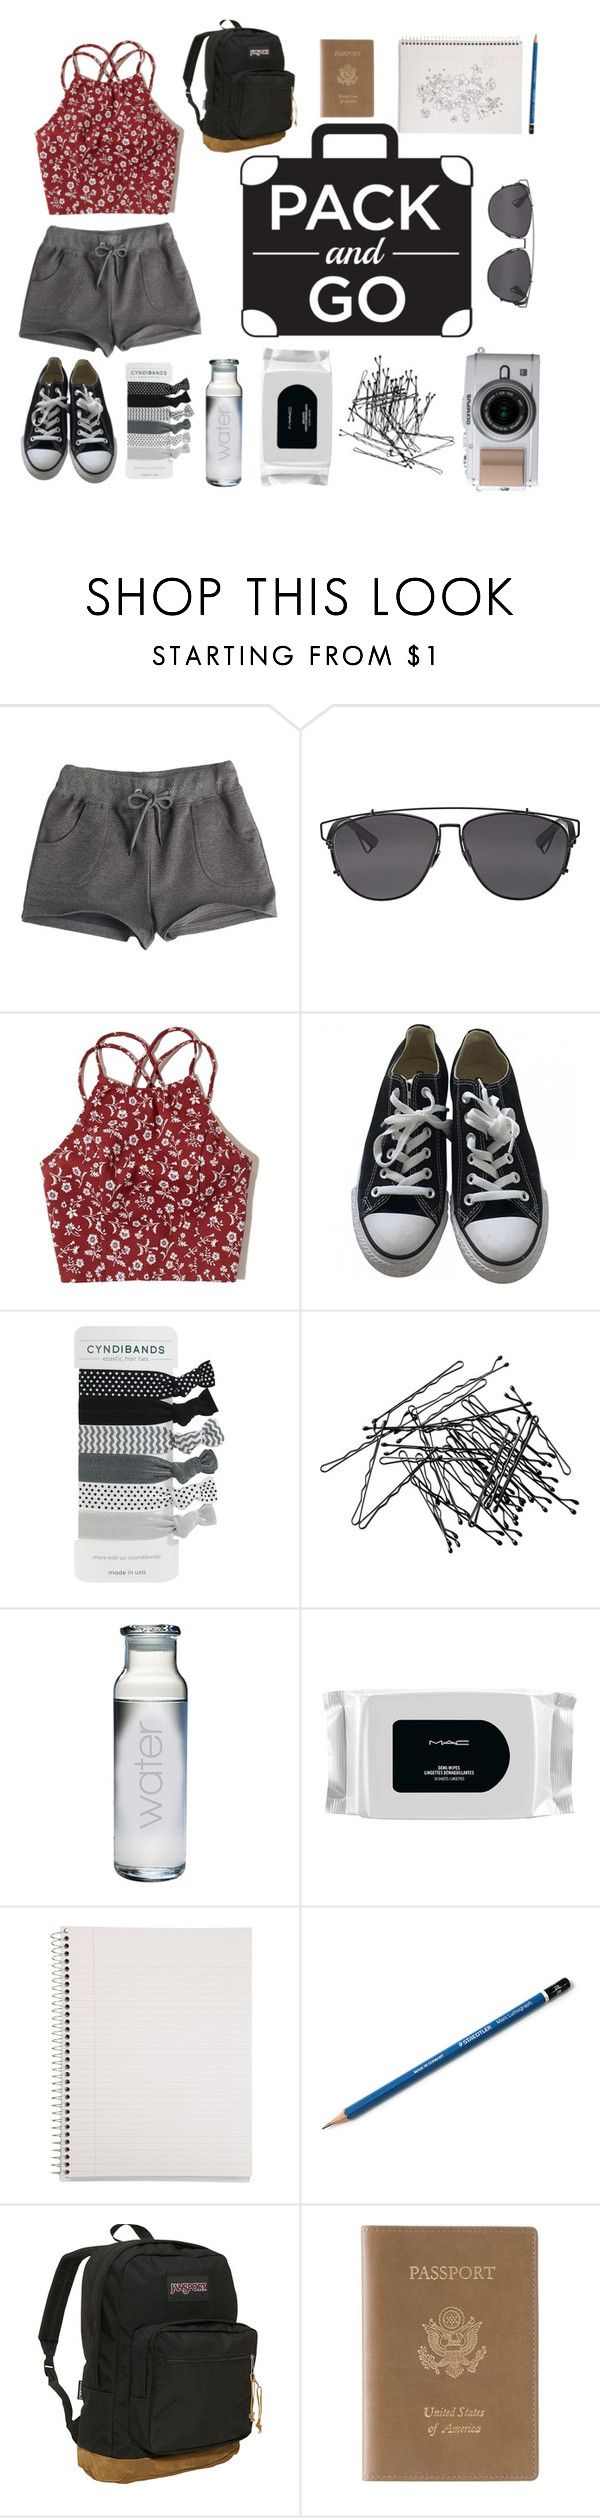 """""""pack and go- mexico city"""" by beccayasha on Polyvore featuring Christian Dior, Hollister Co., Converse, H&M, MAC Cosmetics, Mead, JanSport and Royce Leather"""